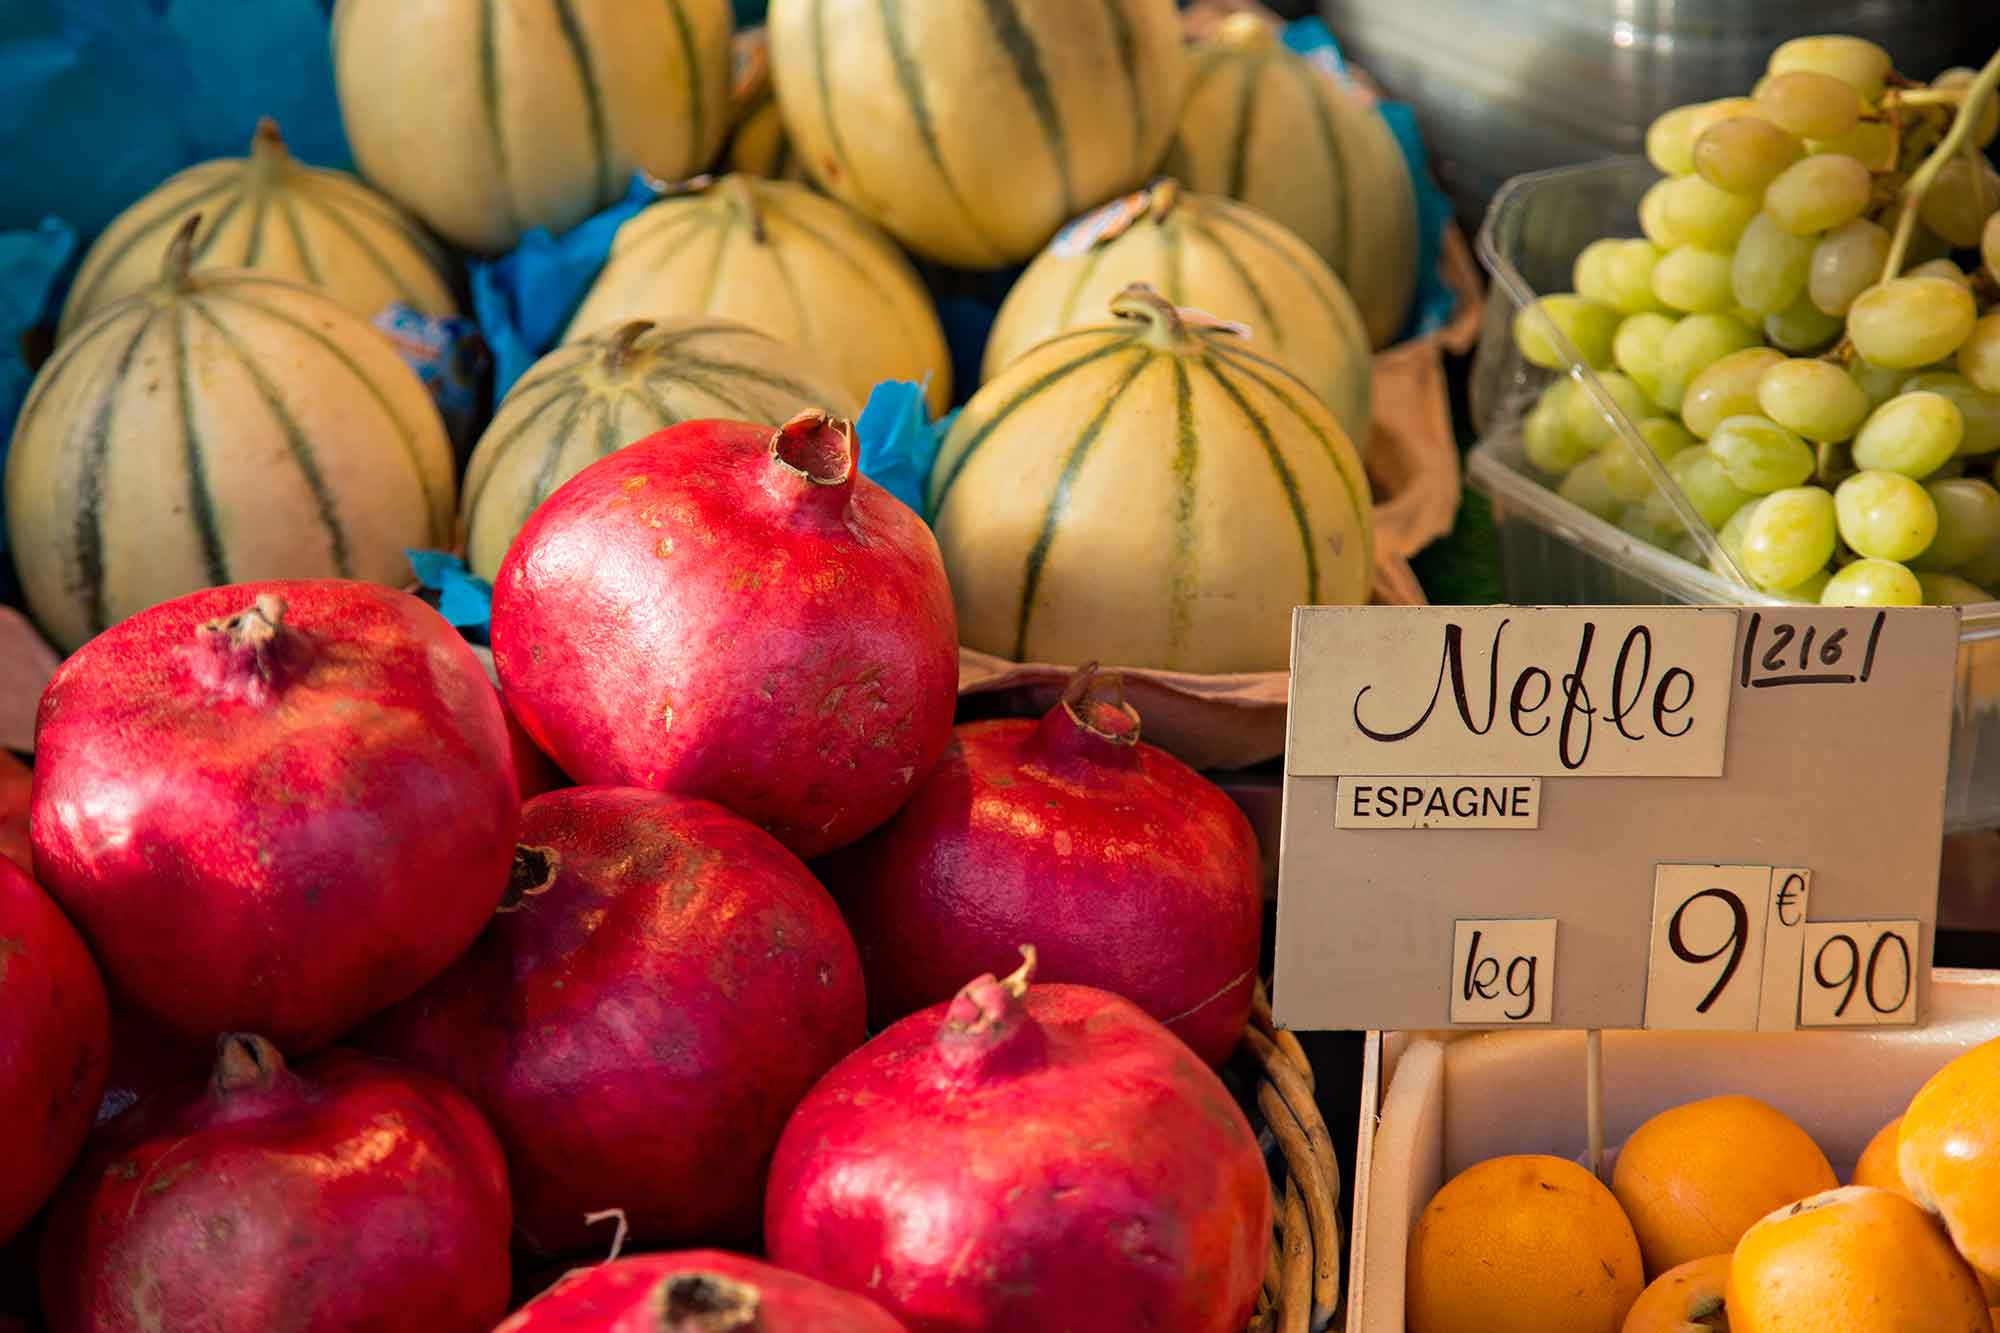 Fresh Pomegranate at a market in Paris, France. © Ulli Maier & Nisa Maier